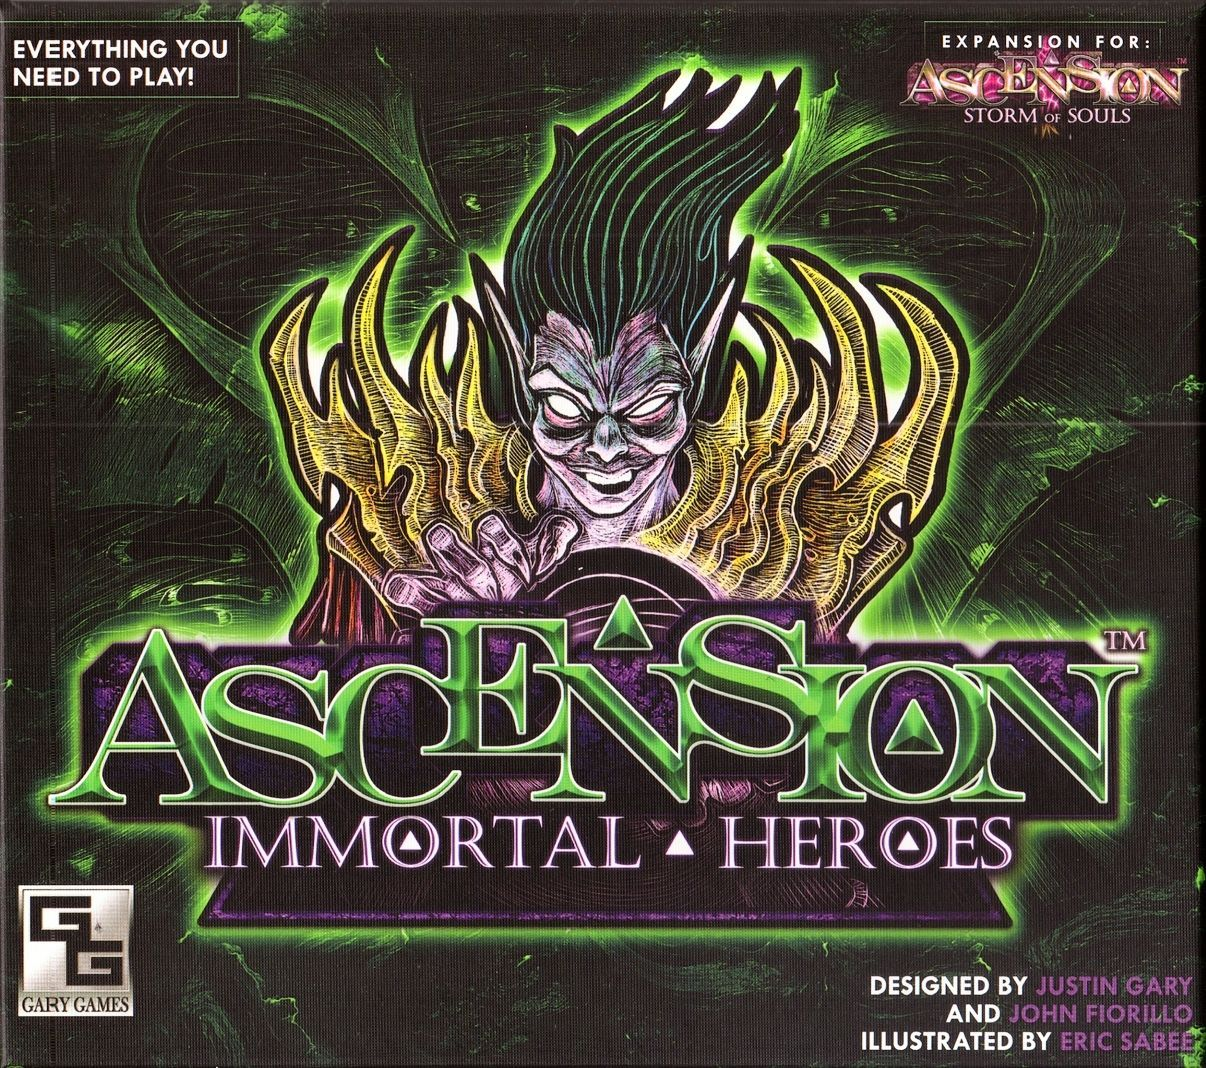 Main image for Ascension: Immortal Heroes board game